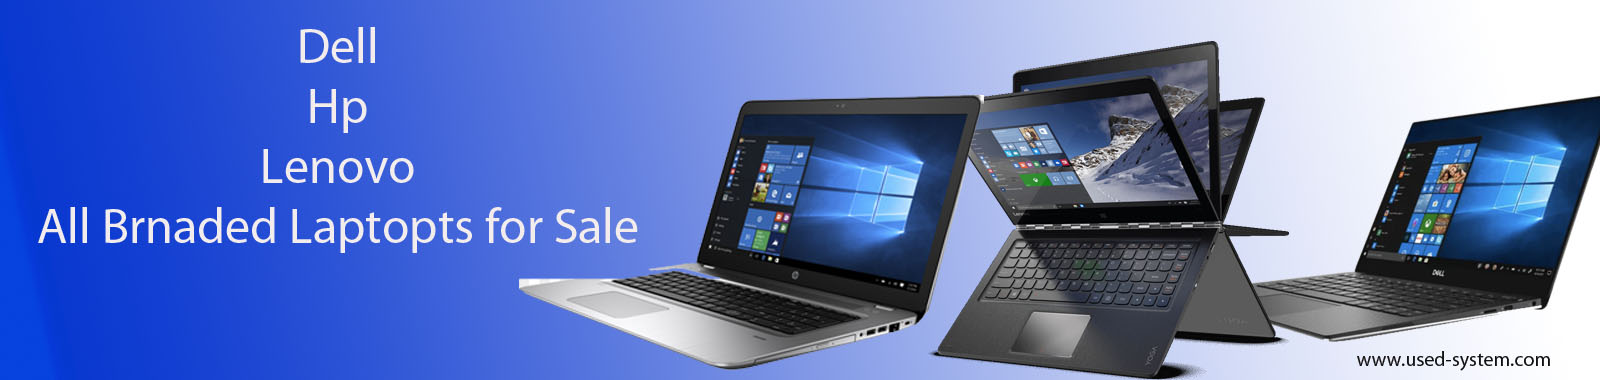 used and refurbished Systems and Laptops